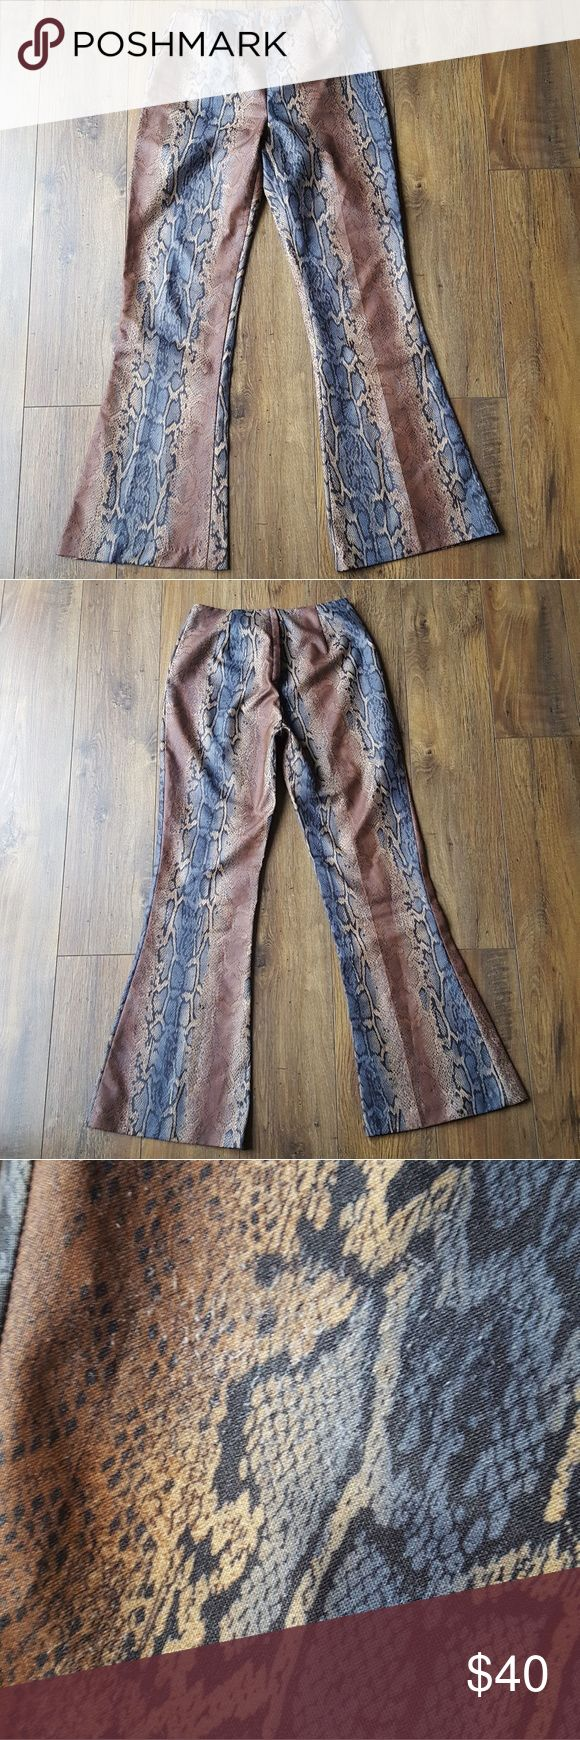 AMAZING snakeskin print flare pants! Late 90's feels right here.  Awesome flare and a mid-high rise waist.  Zipper on the side to close.  These are in great shape, there's just one little spot on one of the hips where the fabric is slightly fuzzy, as pictured.  But with the print, it's almost invisible!  Bundle discount.  I love offers:) Right now I'm having a buy 1 get 2 free sale!  So go ahead and check out the rest of my closet and make a bundle of at least 3 items to take advantage of my…